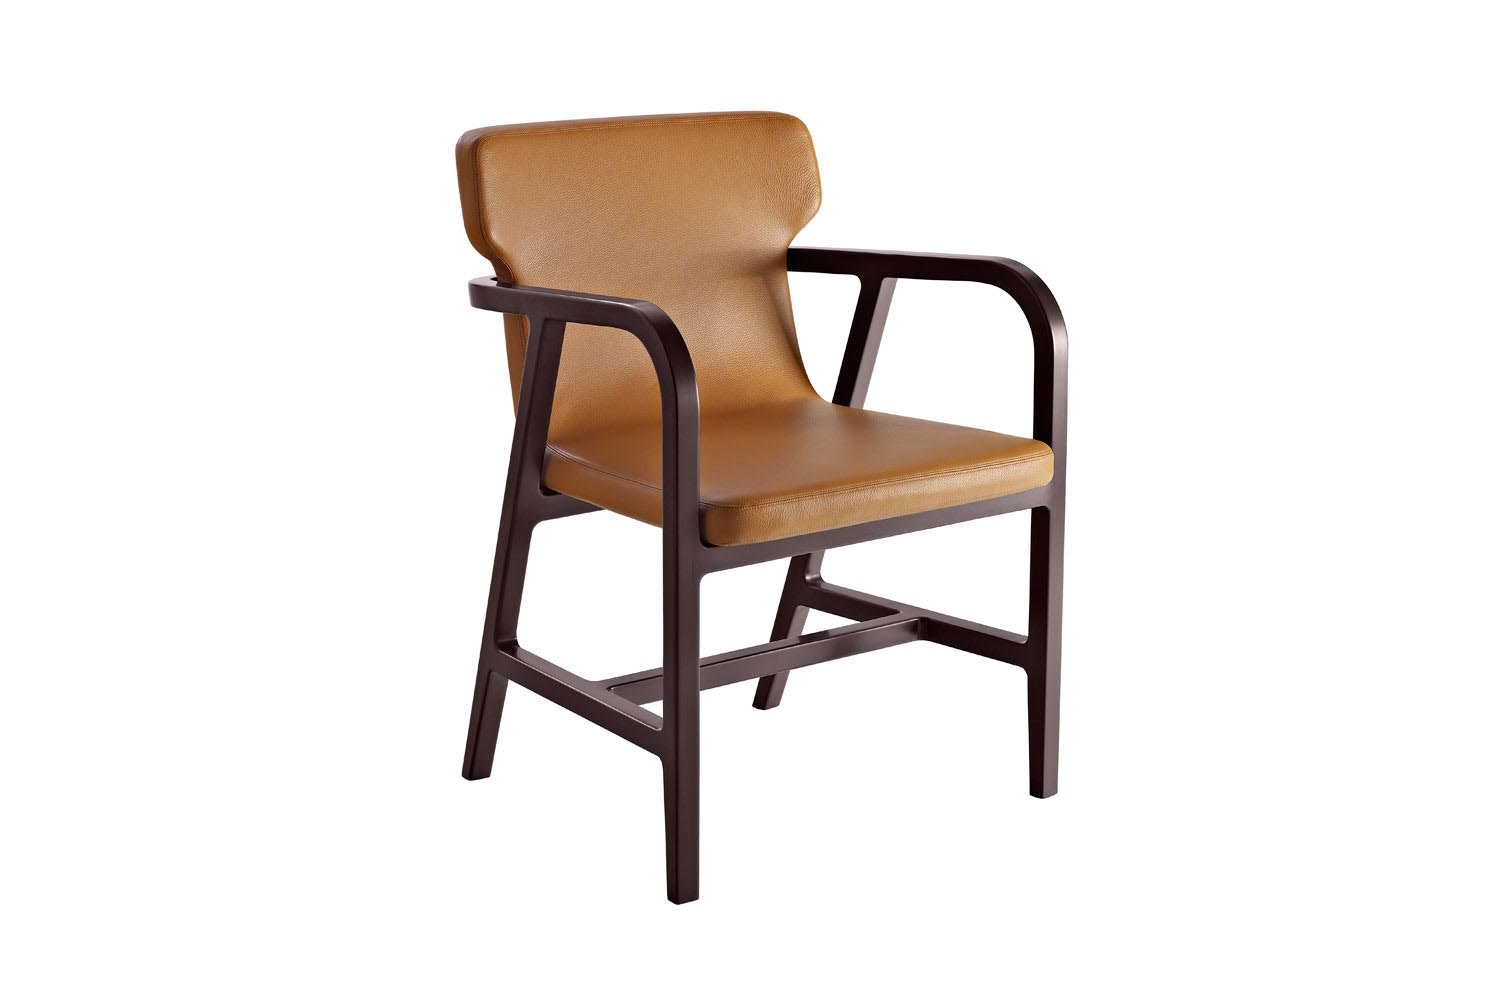 Fulgens Chair by Antonio Citterio for Maxalto